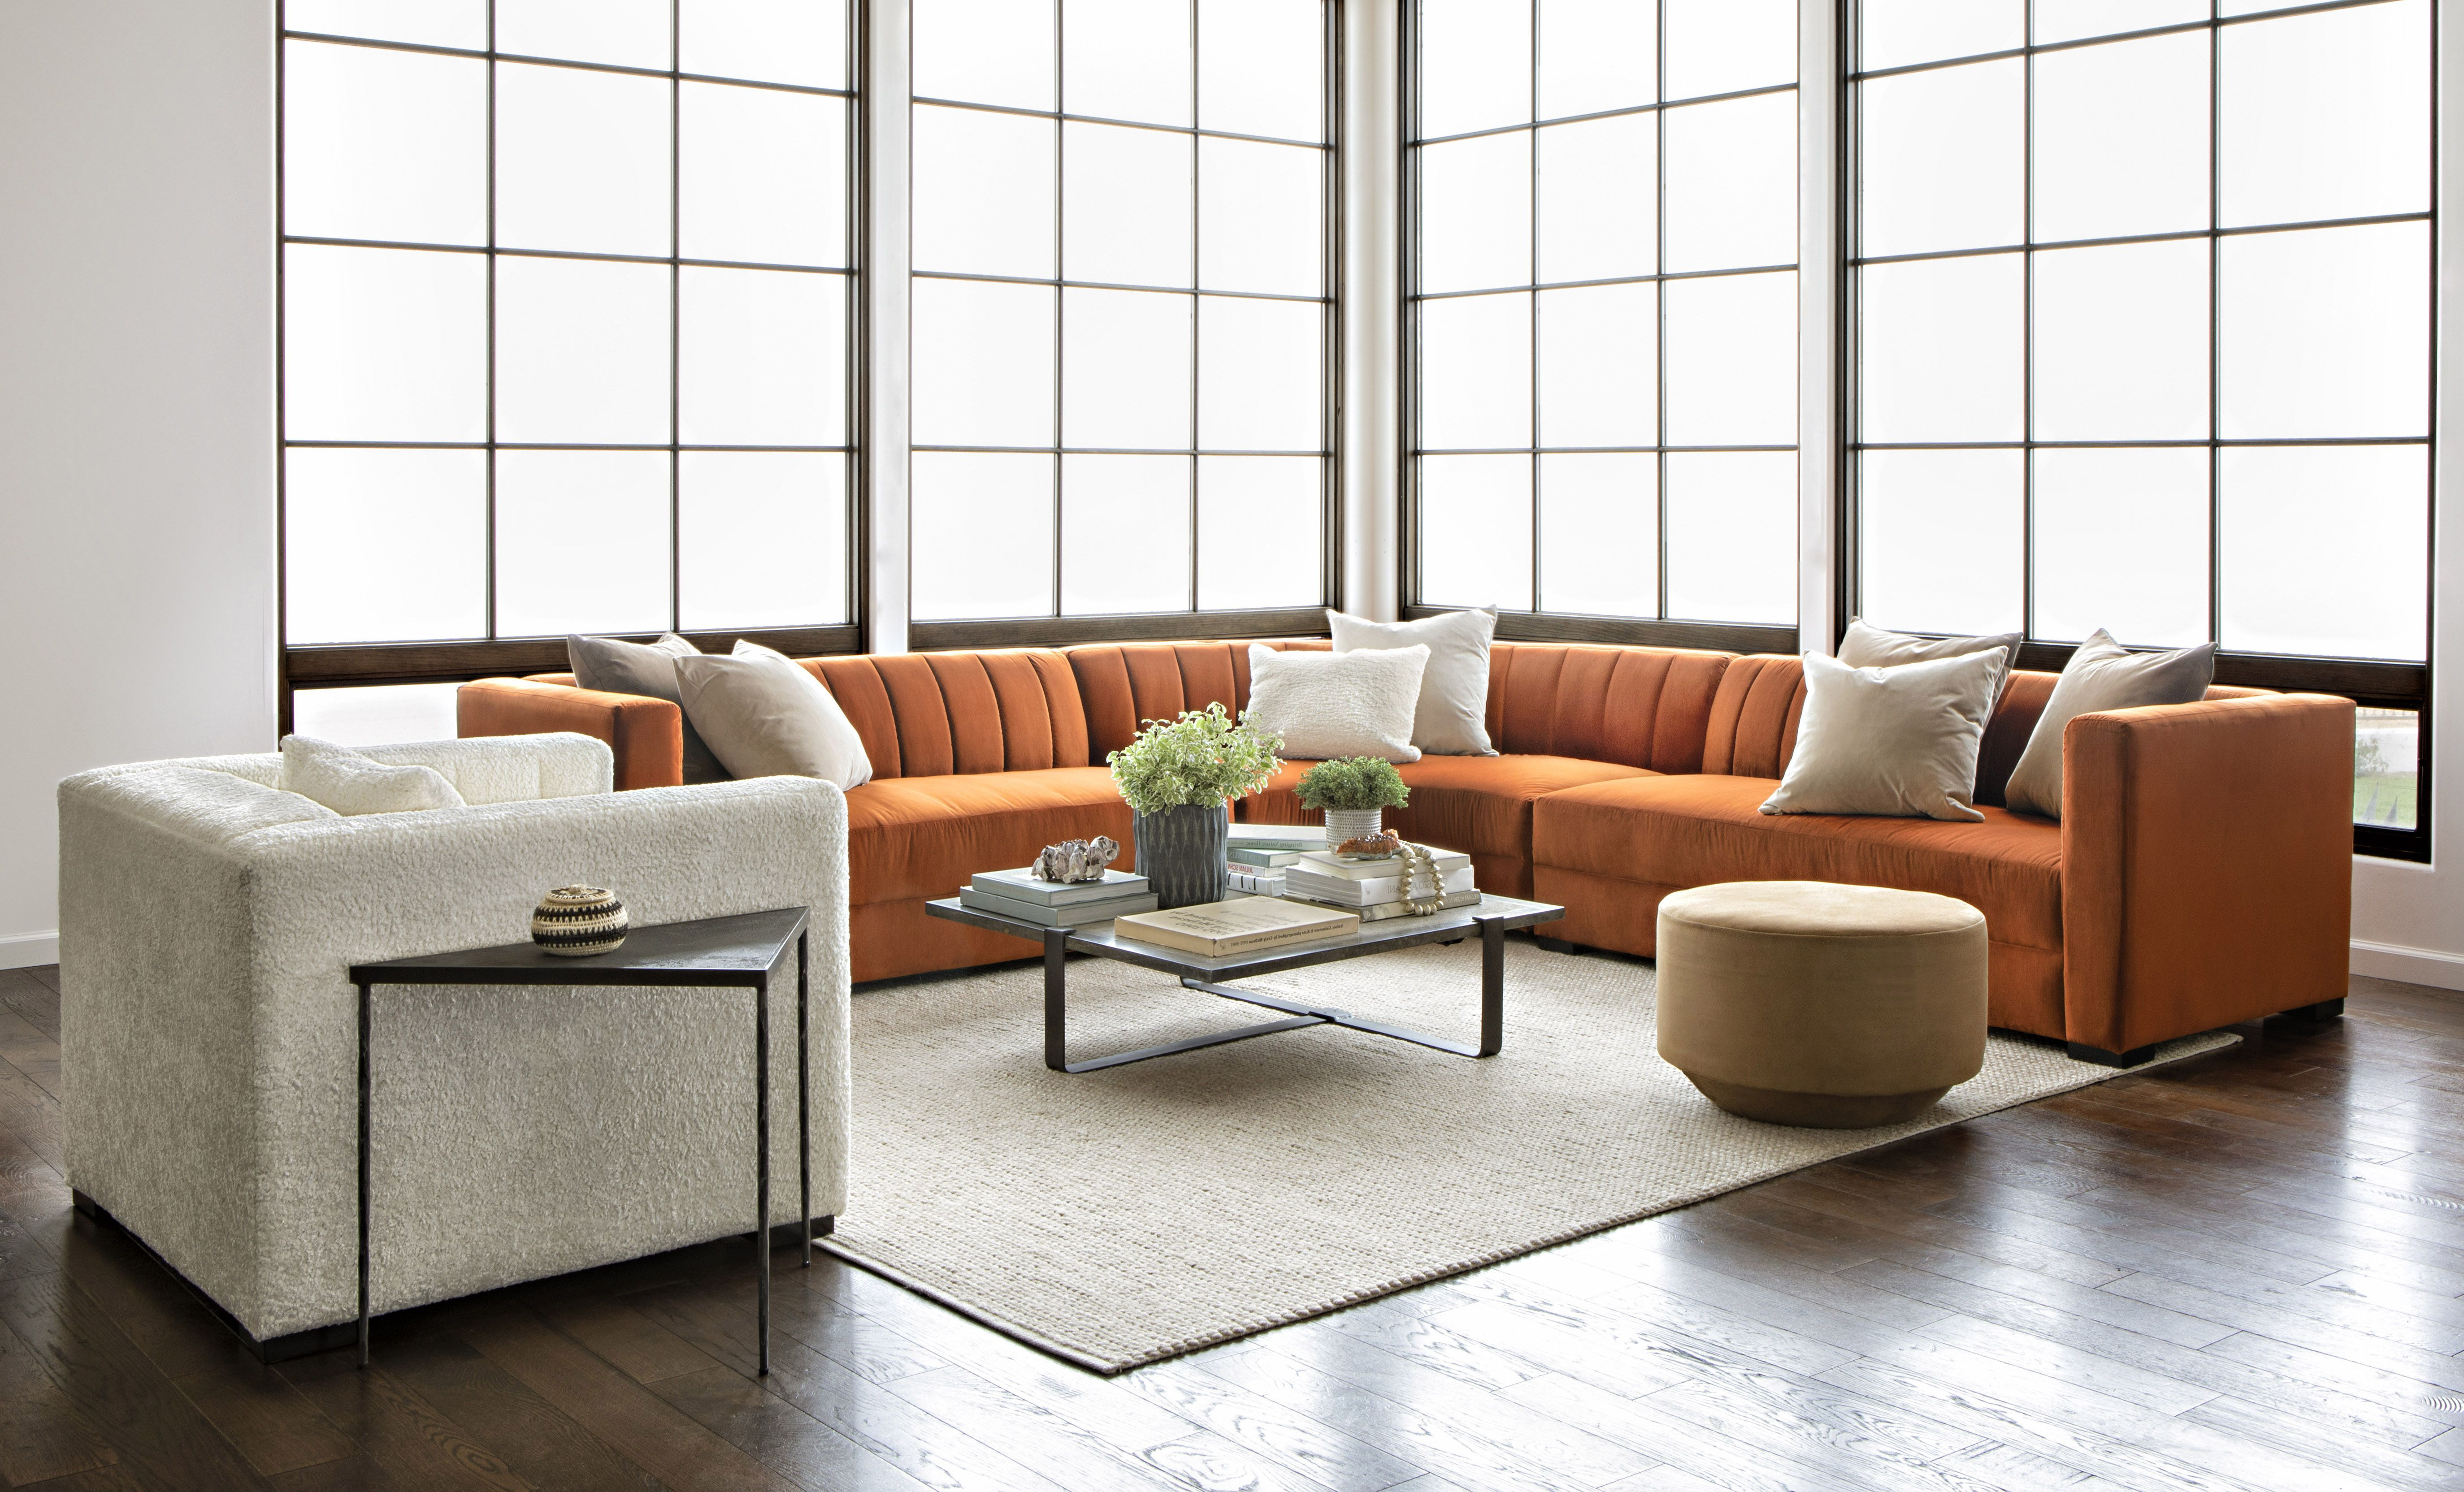 Matteo Arm Sofa Chairs By Nate Berkus And Jeremiah Brent With Well Known Soane 3 Piece Sectionalnate Berkus And Jeremiah Brent (Gallery 15 of 20)